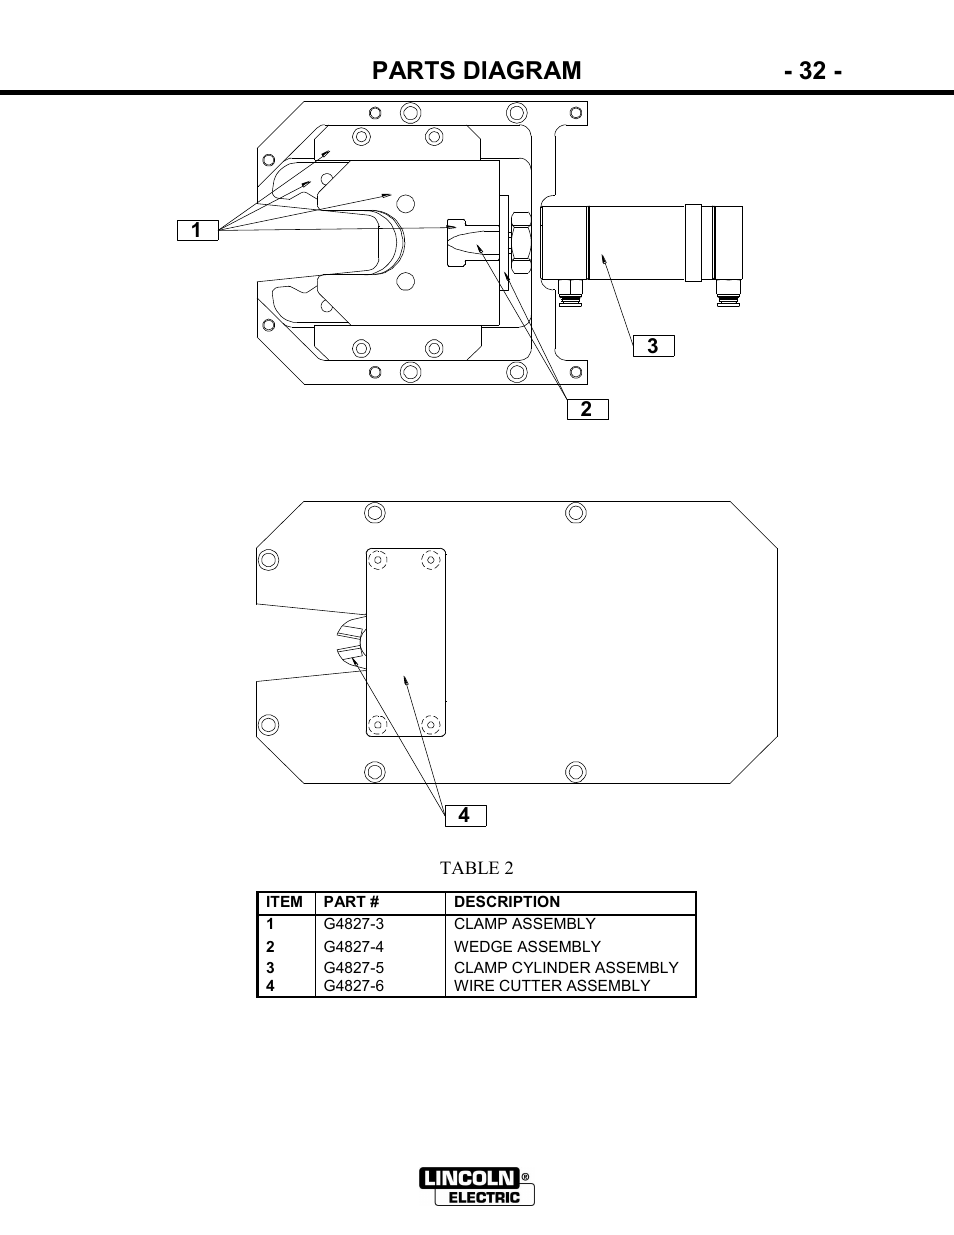 medium resolution of parts diagram 32 lincoln electric im866 power ream user manual page 32 36